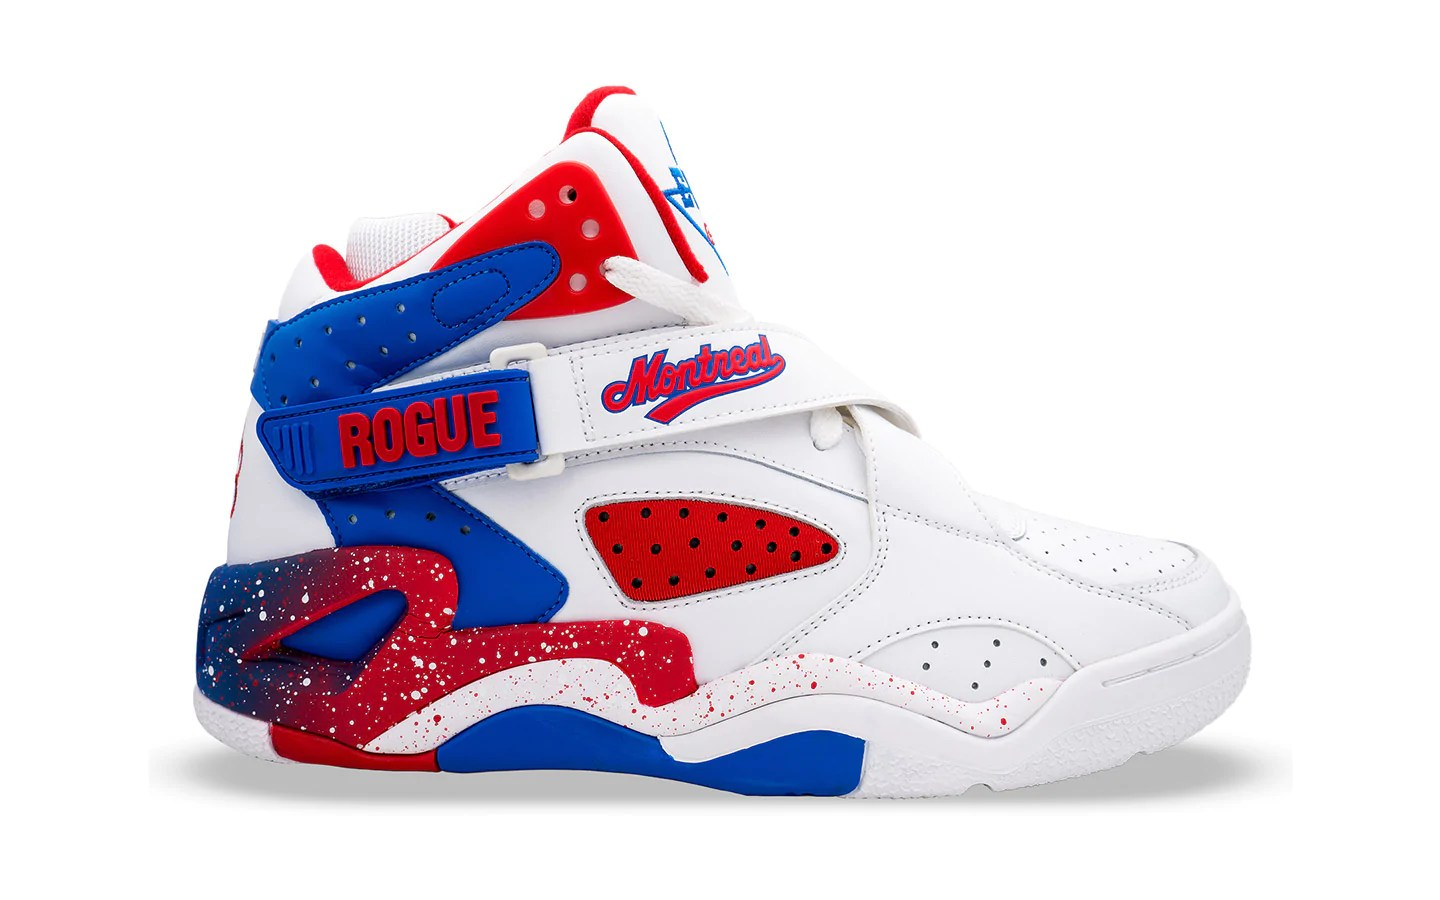 The Rogue Montreal from Ewing Athletics